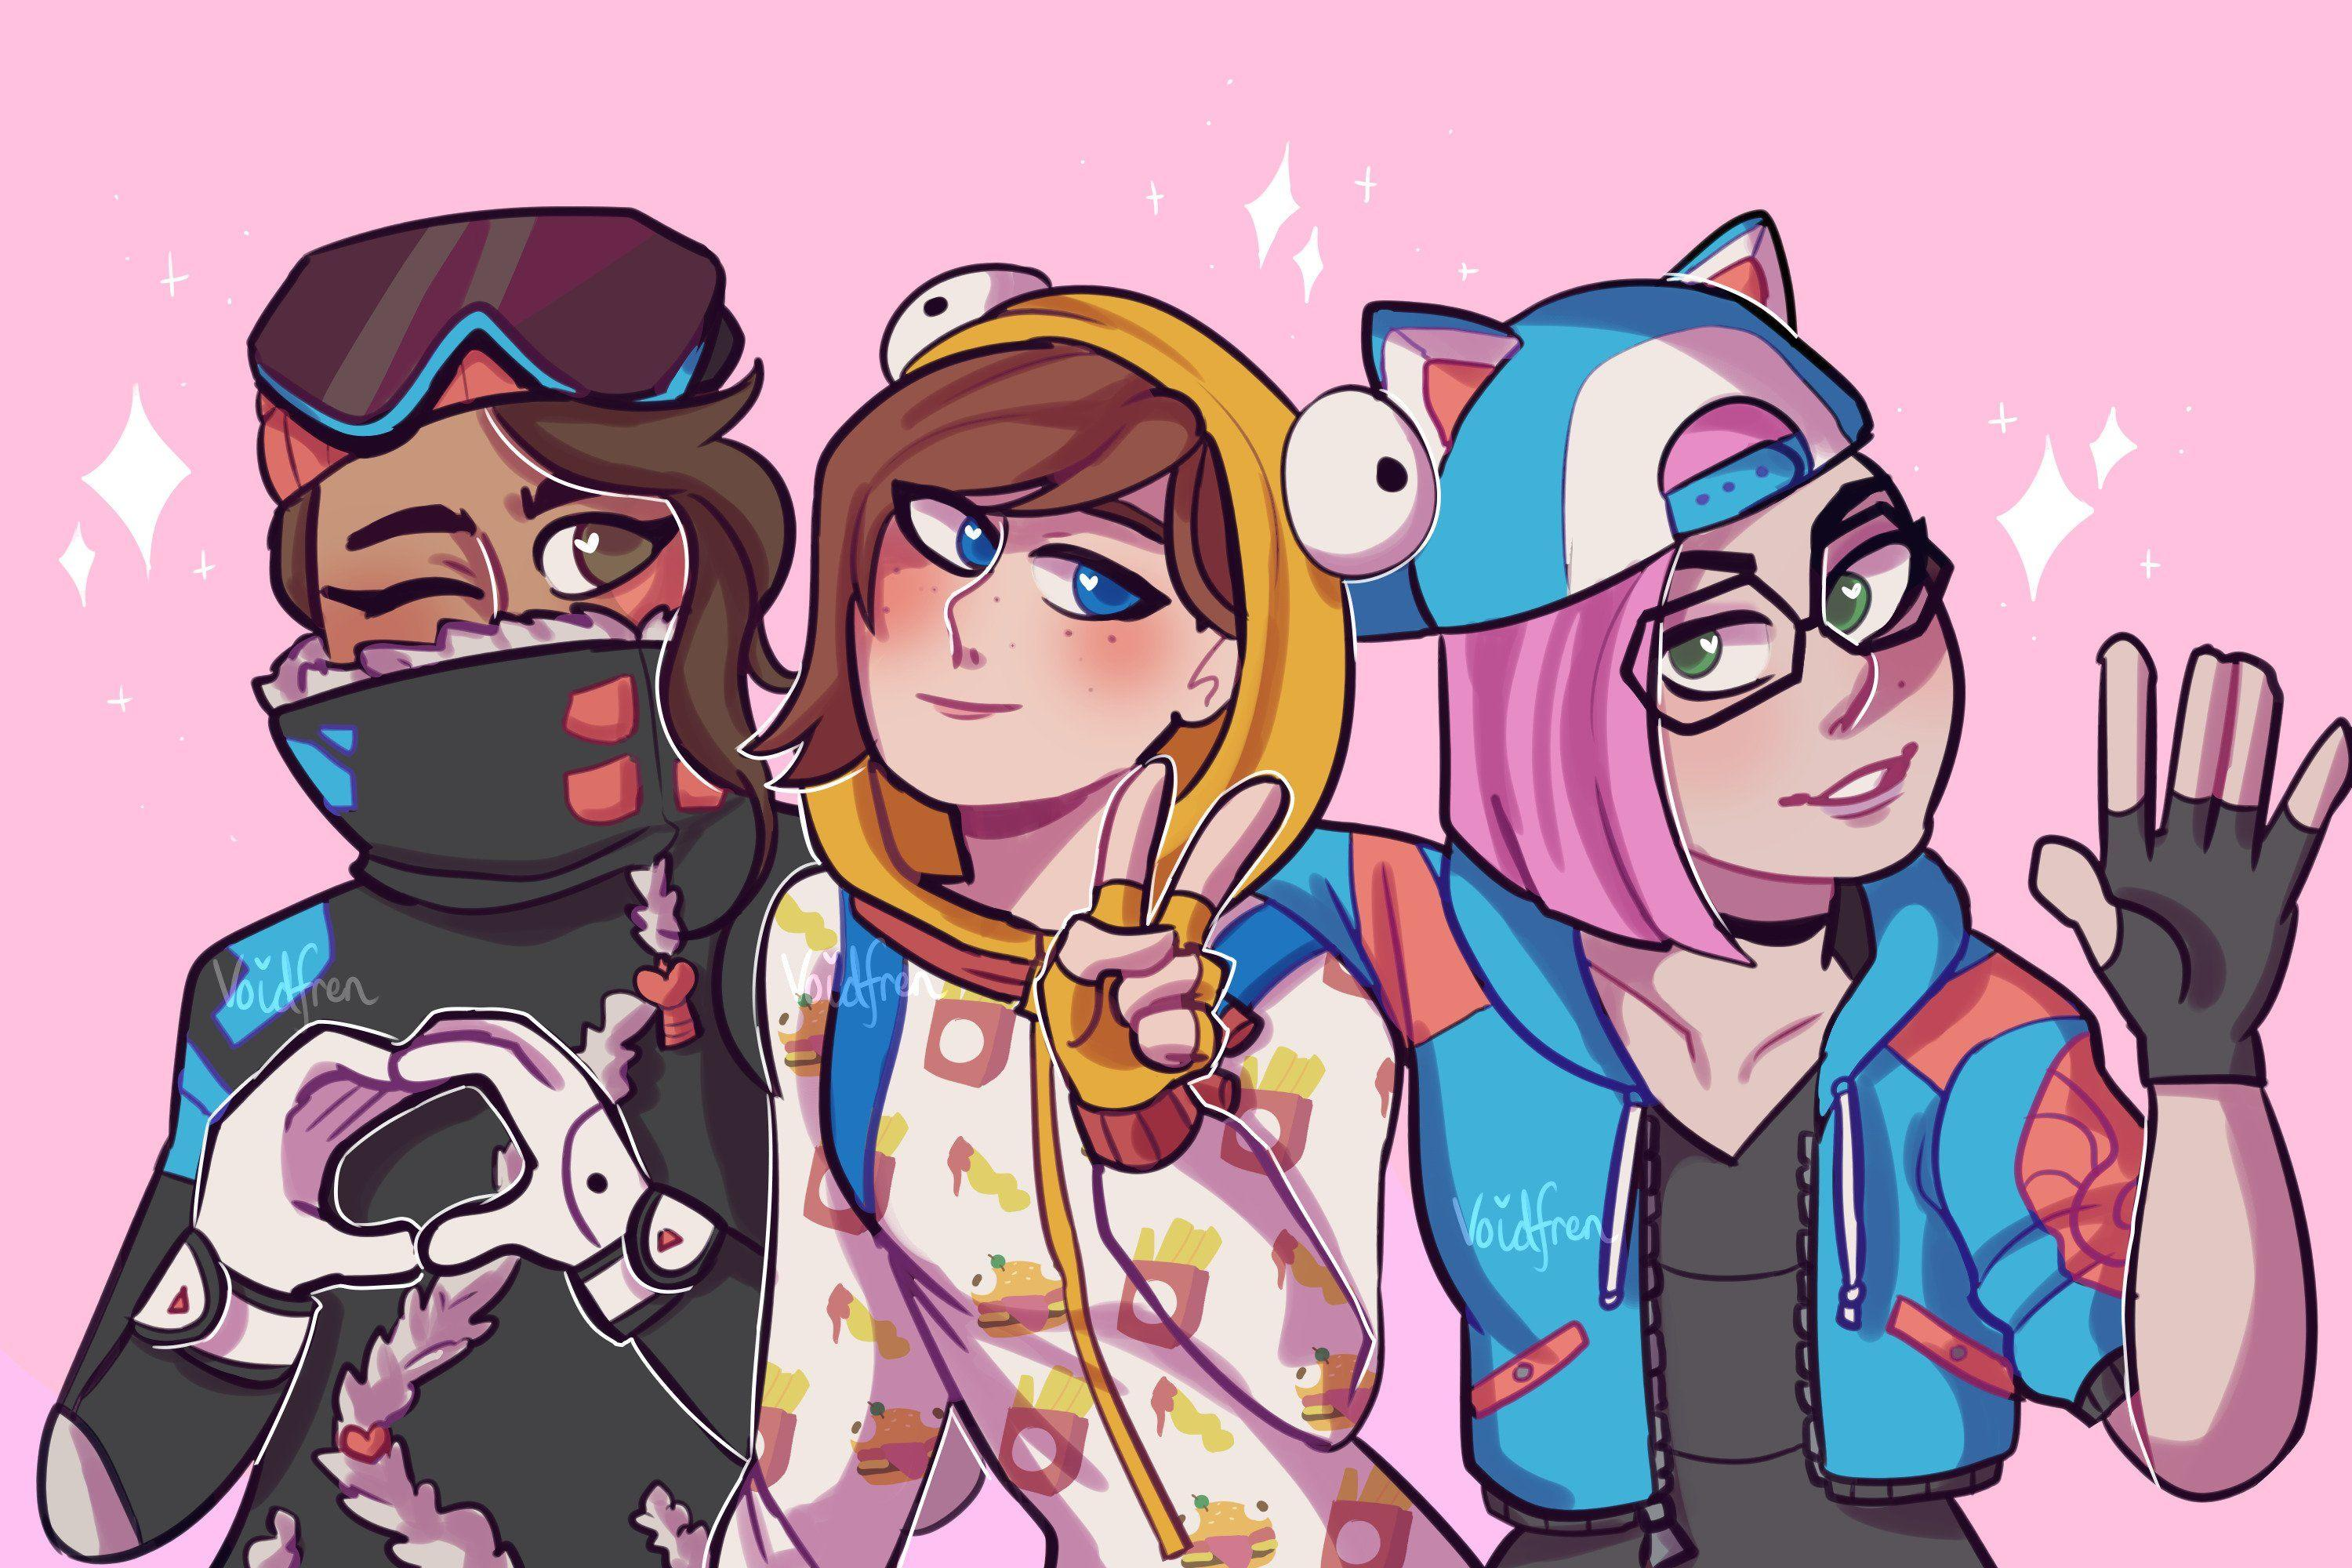 Fortnite Season 7 Cute Girls - Drawing by Rosechaii #4439 Wallpapers ...